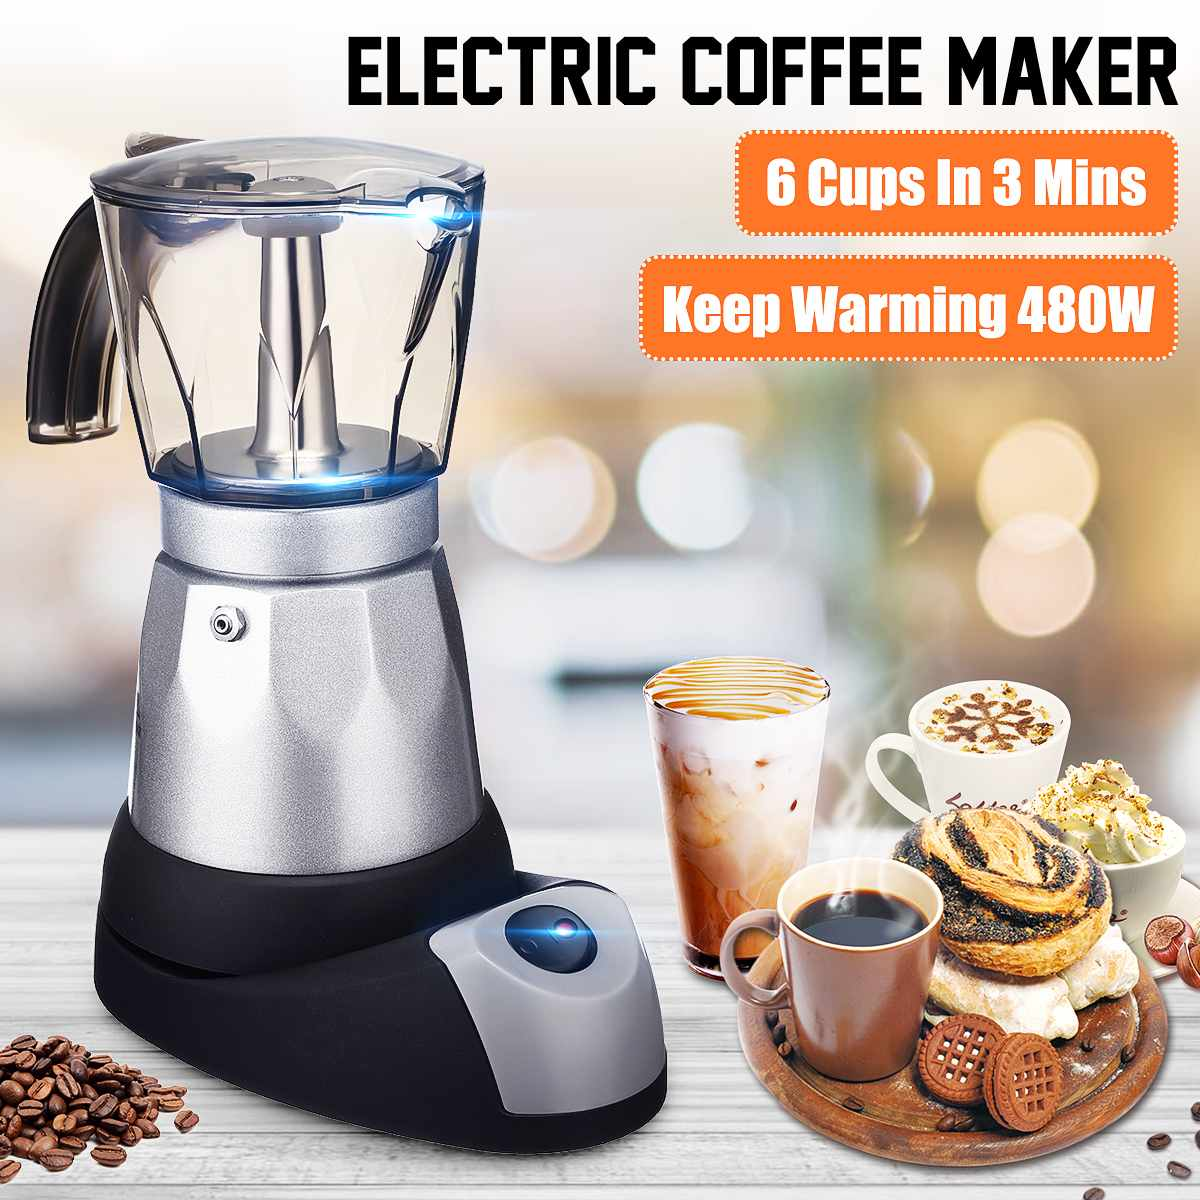 480W 220V Espresso Italian Mocha Maker Coffee Percolators Electric Moka Pot EU Plug Portable Electric Coffee Maker